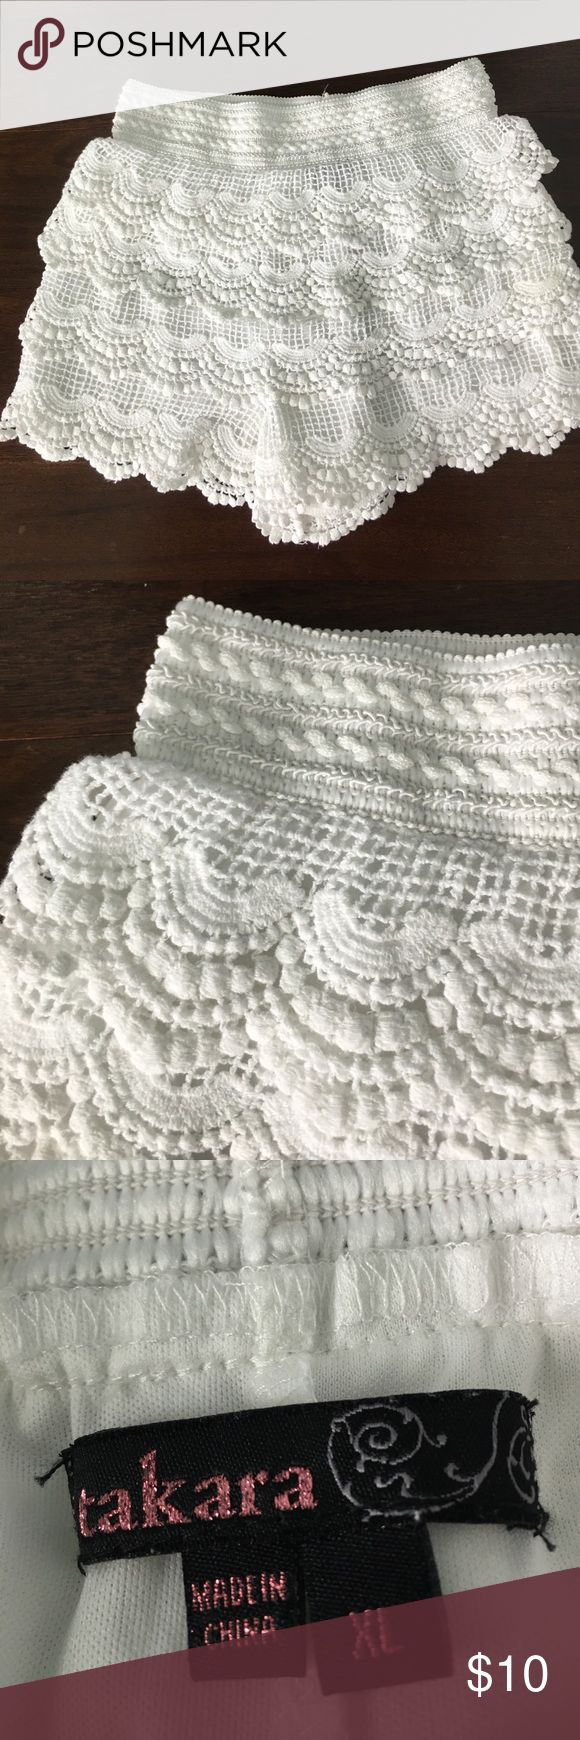 Girl's Cream Lace Shorts Super cute pair of girls shorts. Layers of cream scalloped lace over knit lining. Elastic waist.  Very good used condition. Takara Bottoms Shorts